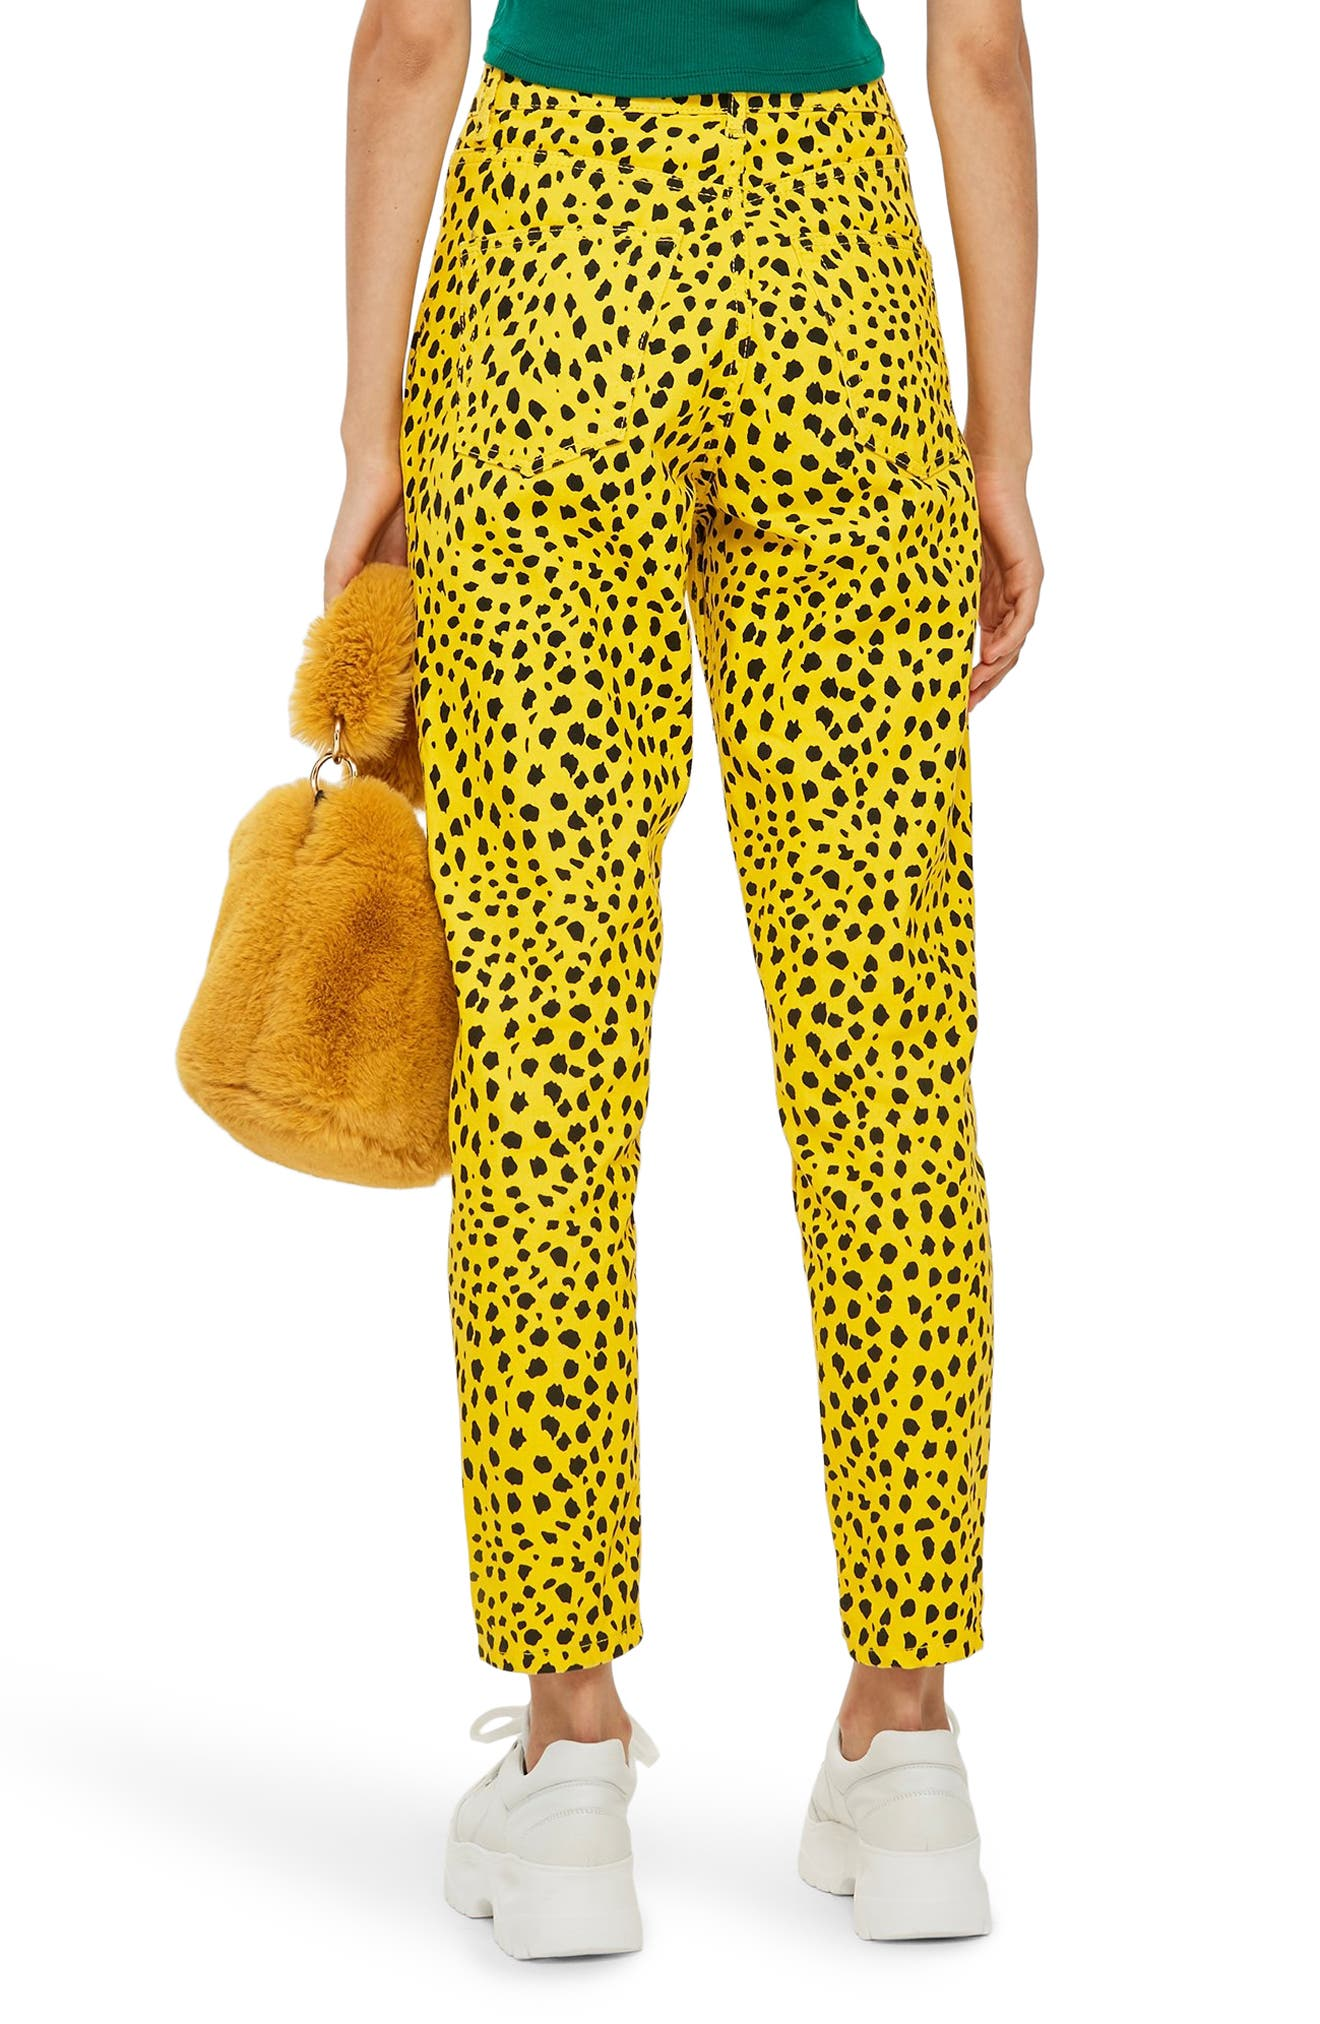 Leopard Mom Jeans,                             Alternate thumbnail 2, color,                             YELLOW